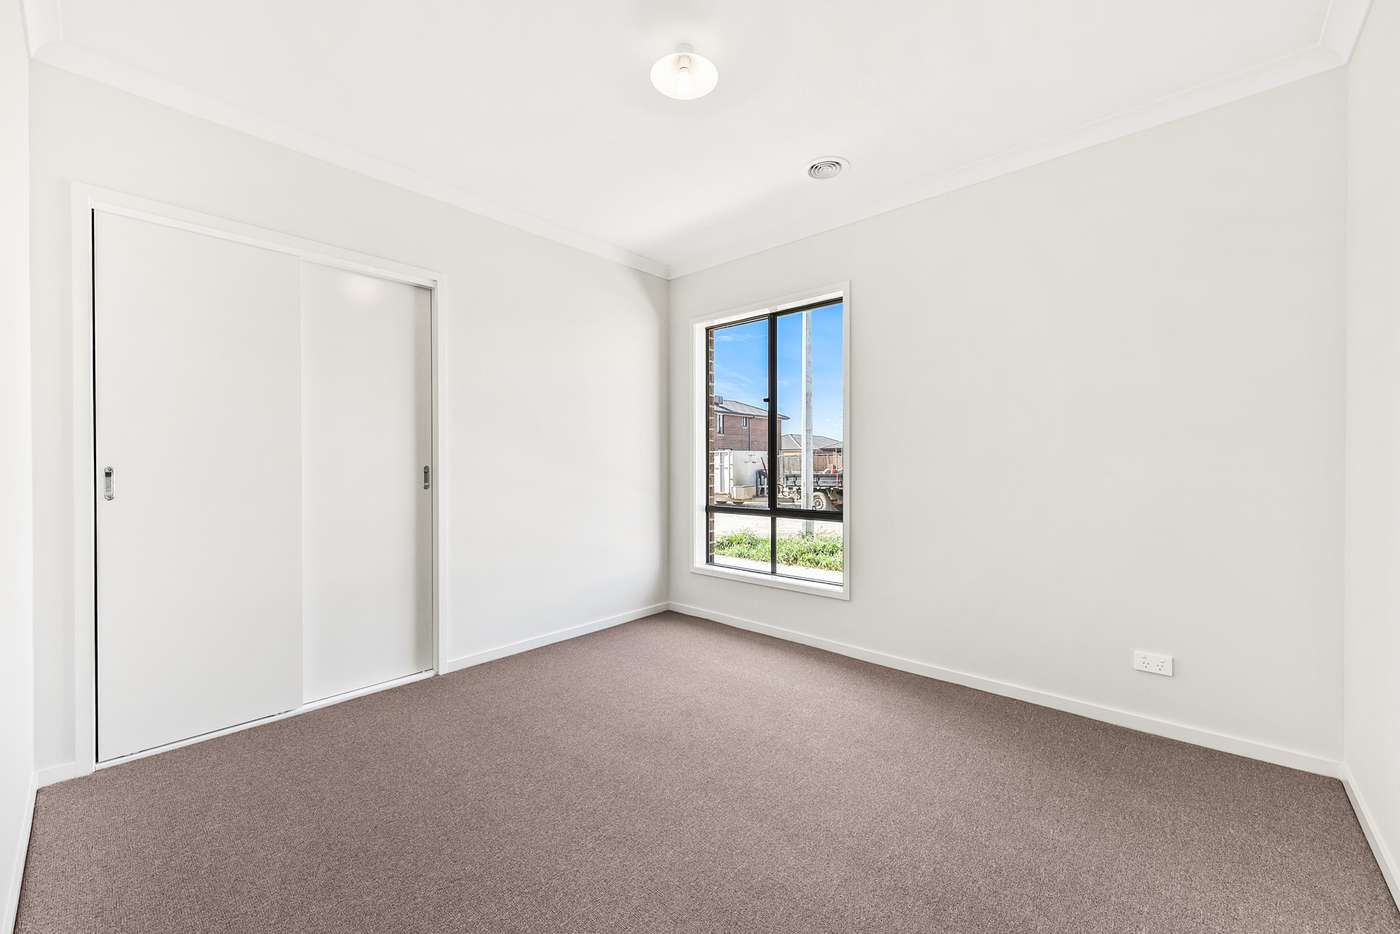 Seventh view of Homely house listing, 1 Serengeti Street, Clyde North VIC 3978